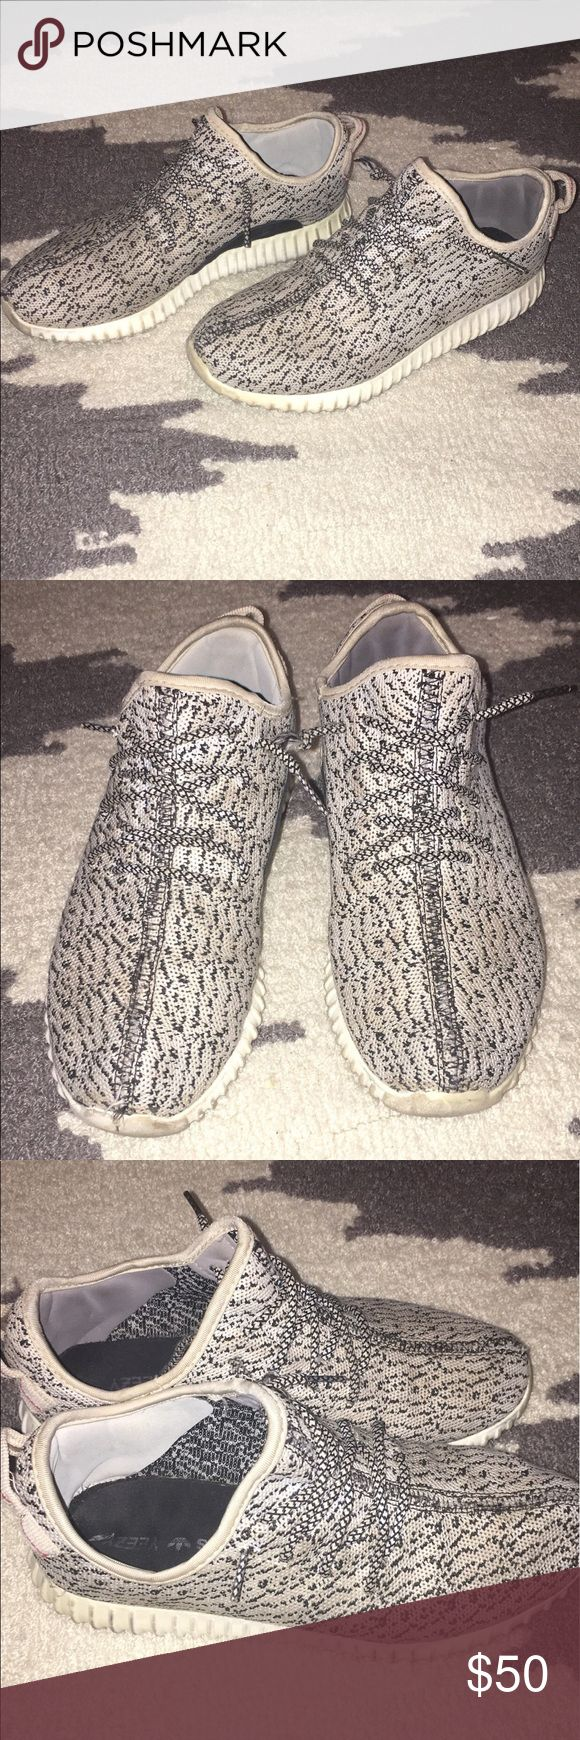 ADIDAS YEEZY BOOST Price reflects Authenticity!!! I was told they were real, but im pretty sure they aren't. Paid $250, asking $50. I will ship next day. Minimal wear, one of the insoles is loose inside, and one of the shoe laces is fringing a little. I always get compliments on them and are always asked if they're real because people think they are. Any questions? Let me know! Adidas Shoes Sneakers